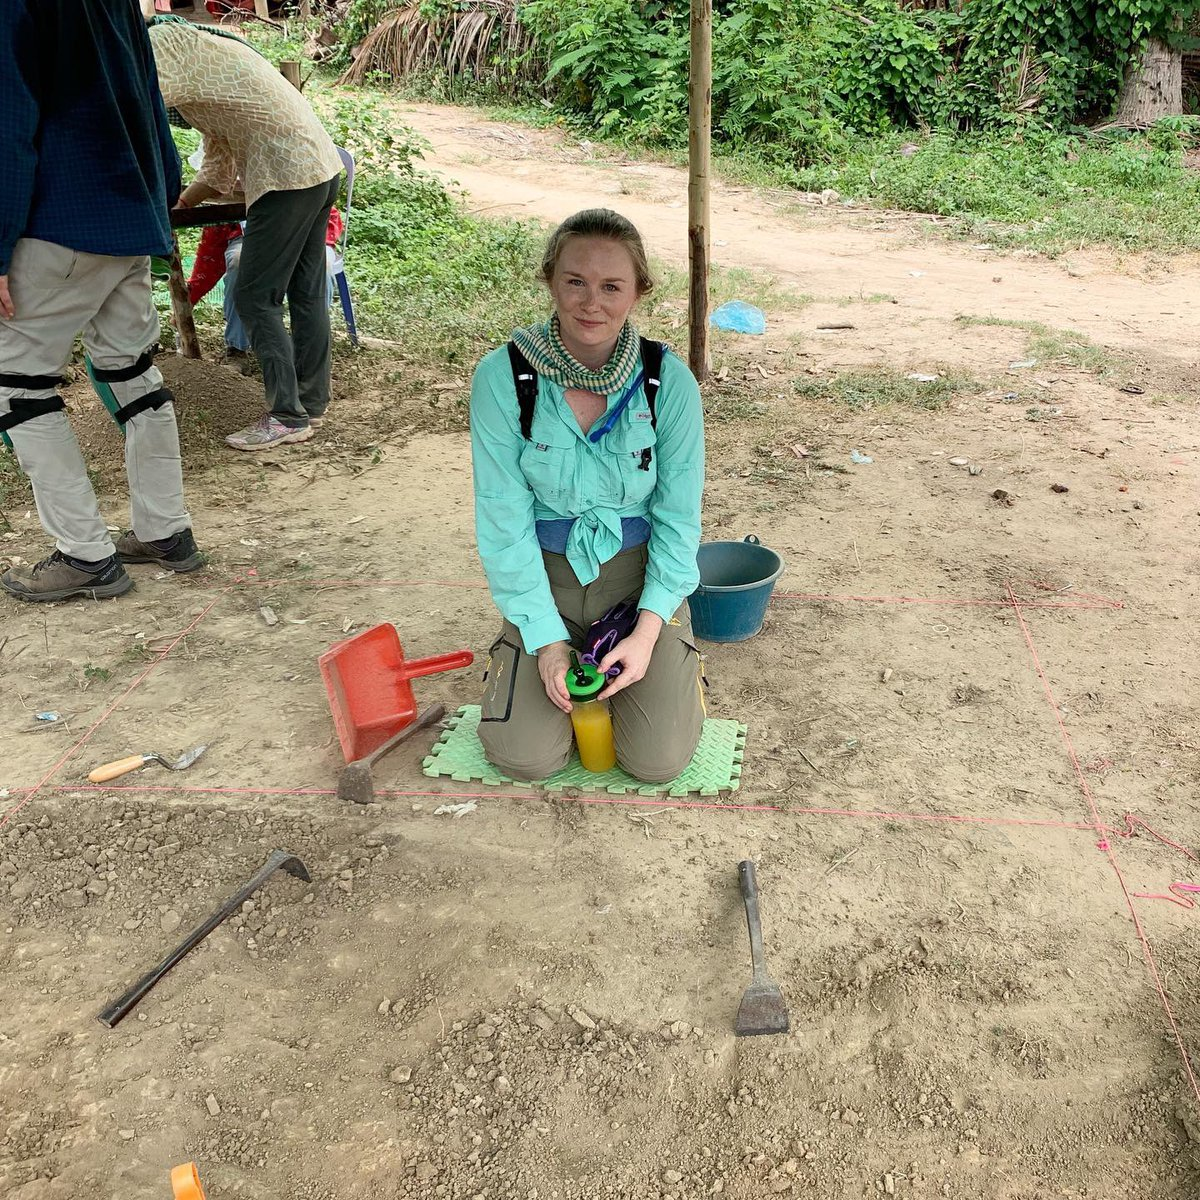 From our fieldwork yesterday! I love learning new skills, and it was so fun learning how to map, measure, and excavate. #archeologicalexcavation #maloriesadventures #maloriemackey #archeology #archeologicaldig #cambodia #battambang #baset #basettemple